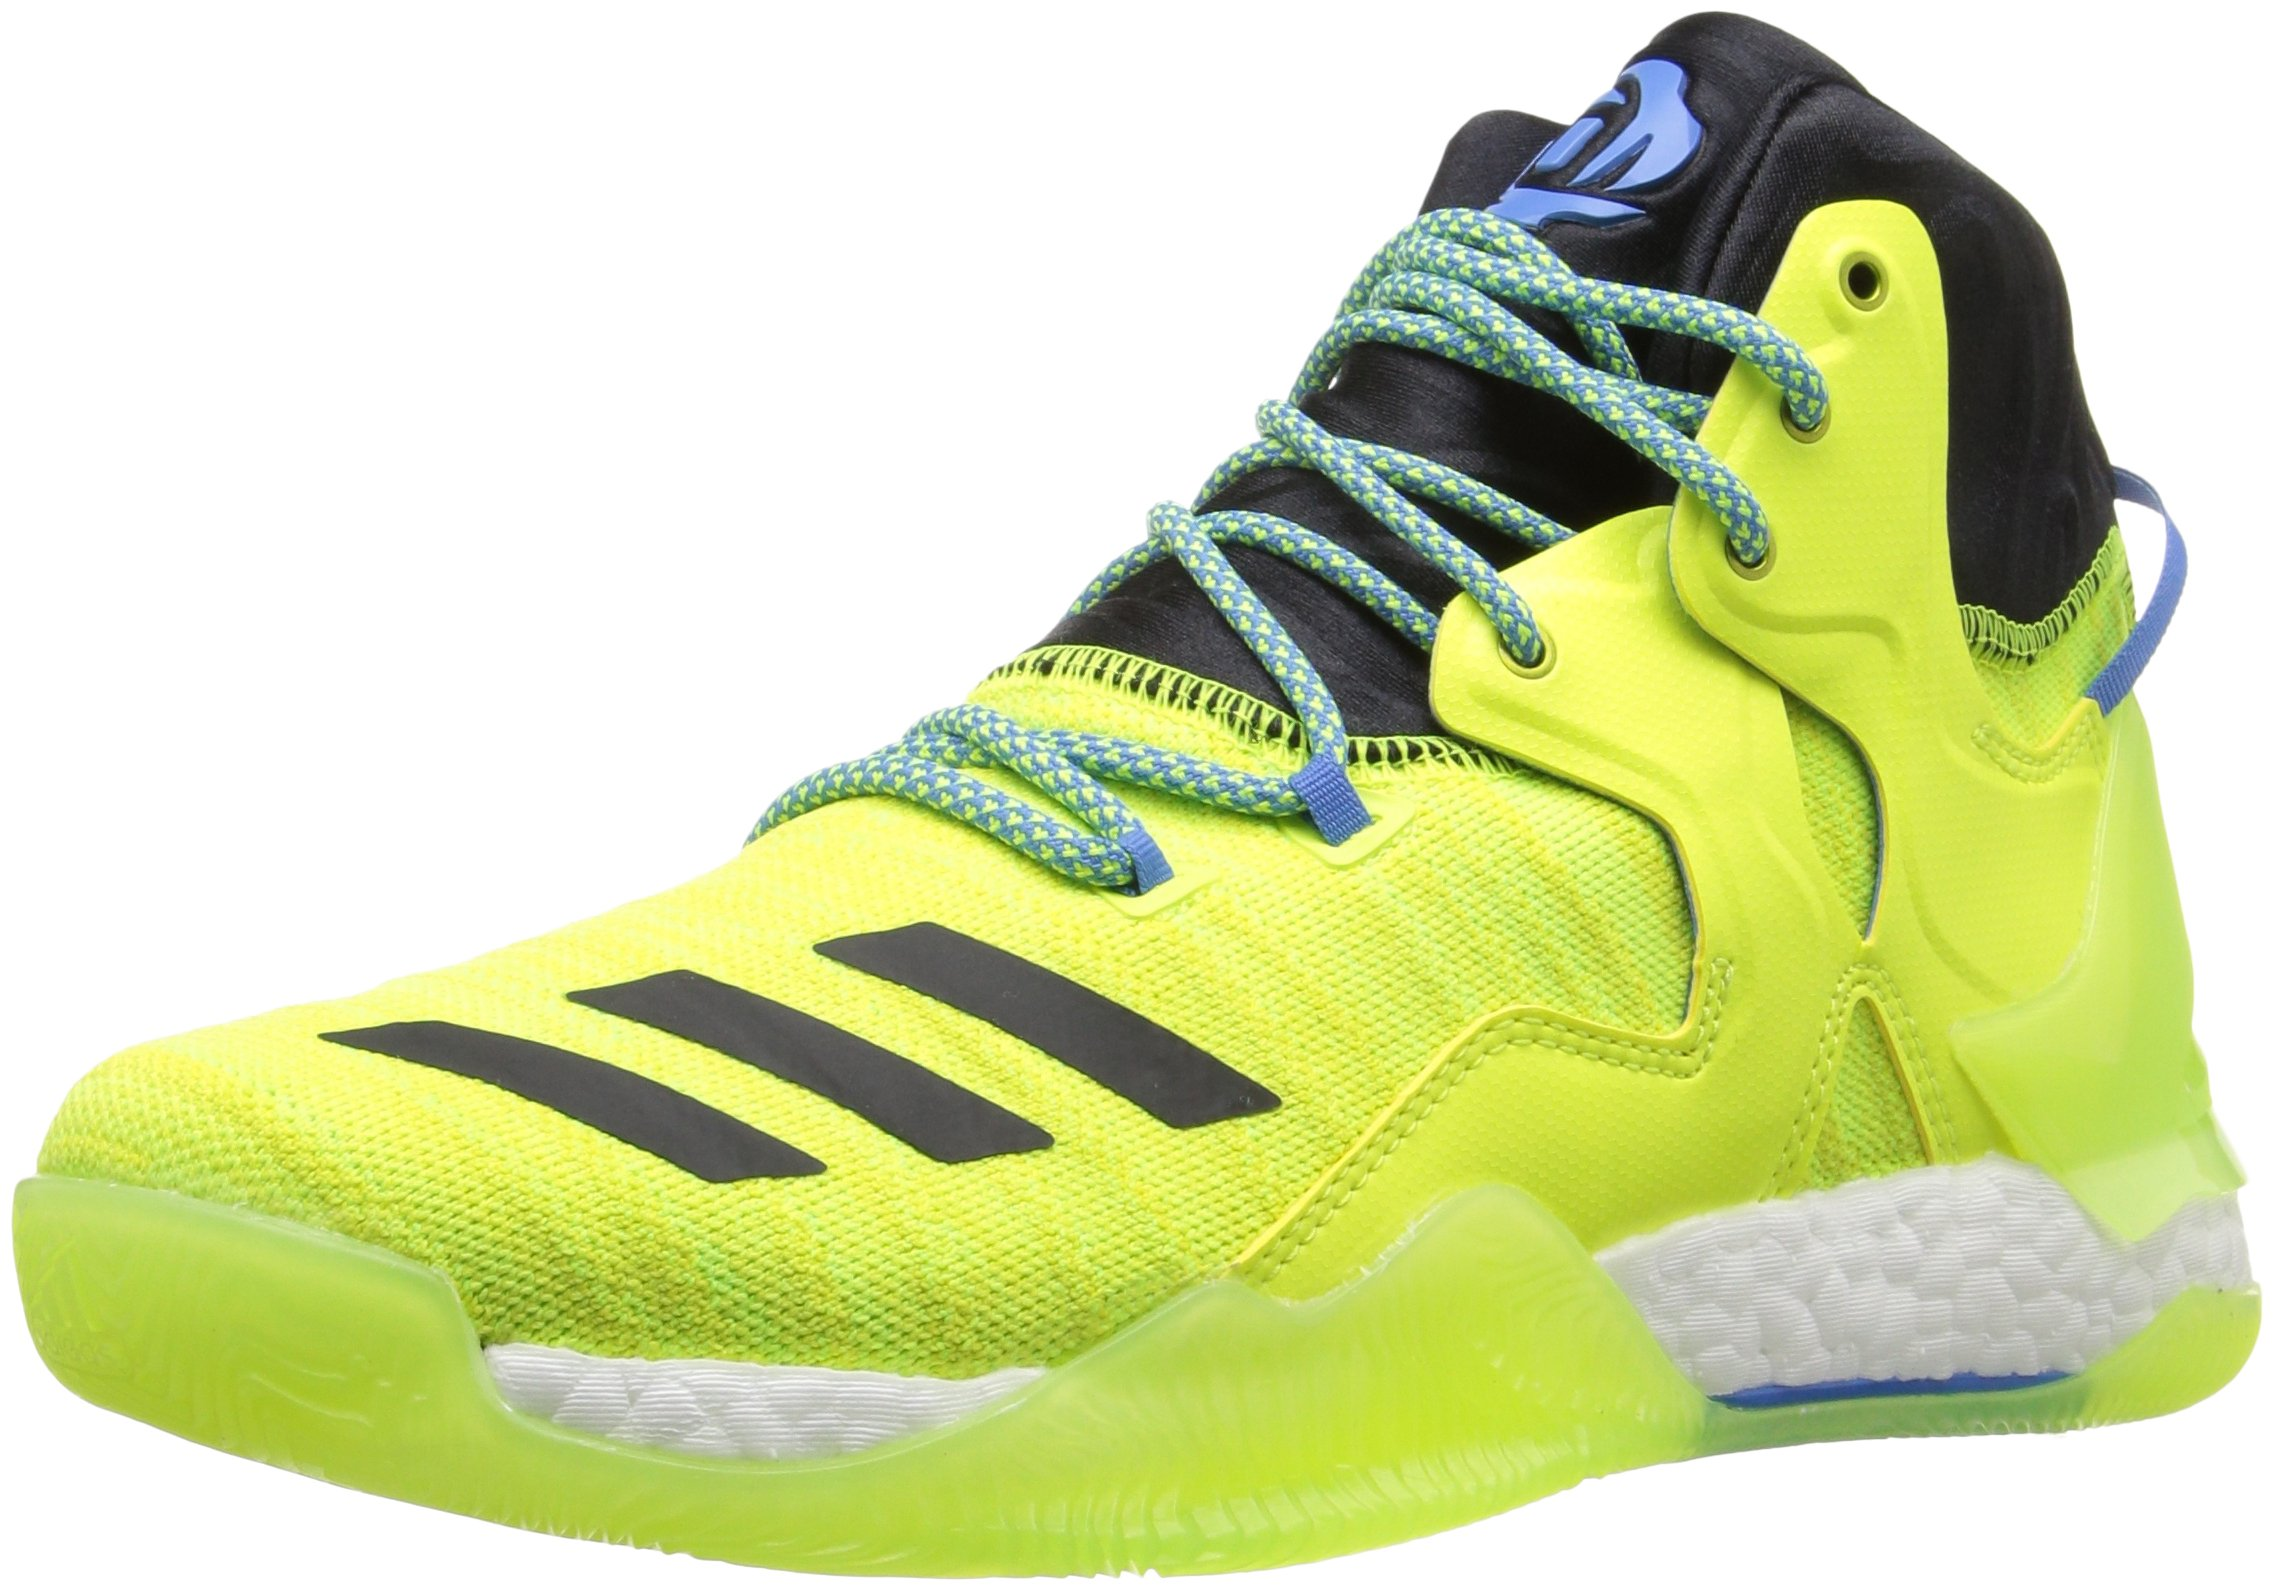 535b55c921ac Galleon - Adidas Men s D Rose 7 Primeknit Basketball Shoe Solar Yellow Black  Ray Blue Fabric 10 M US